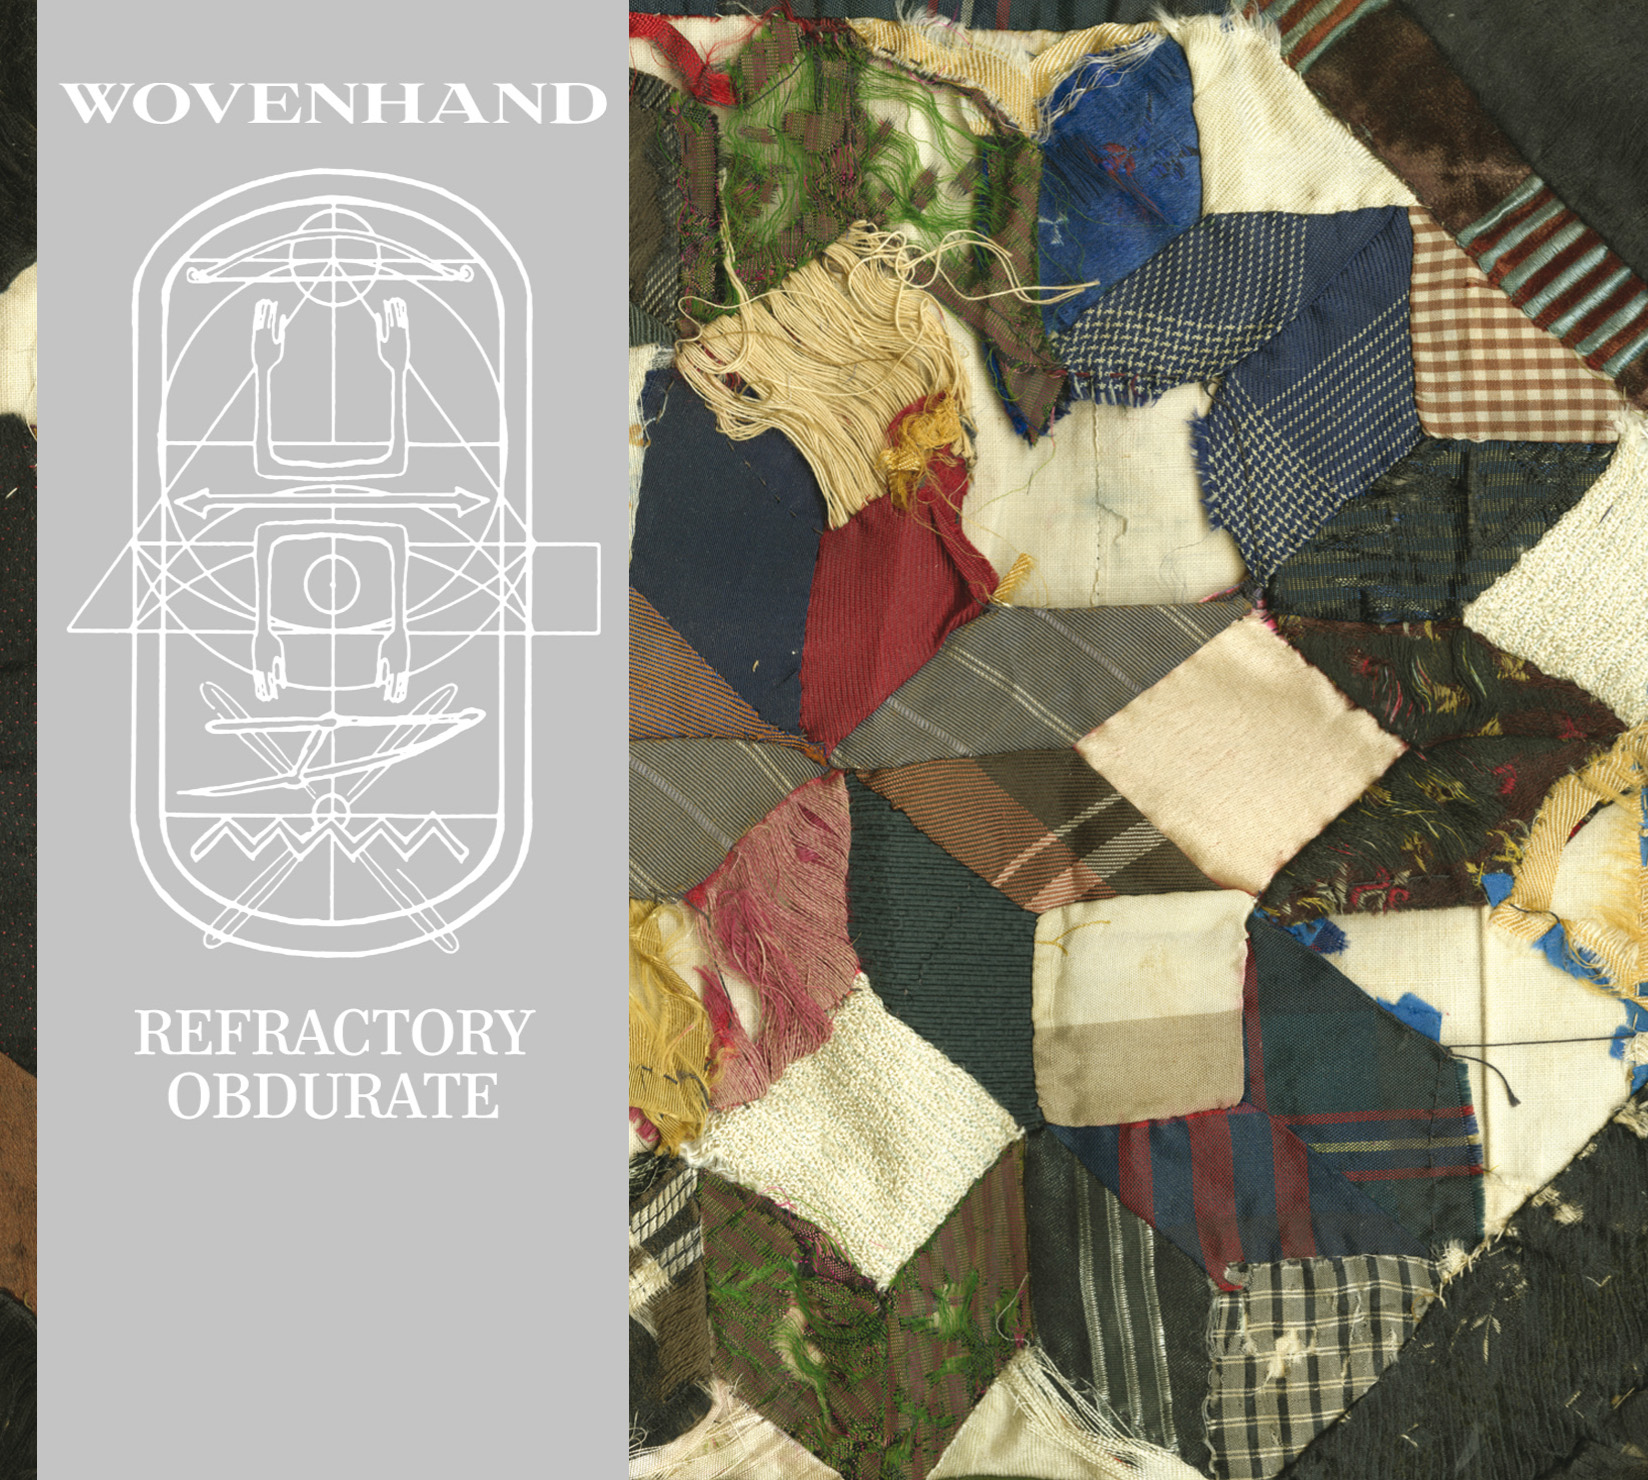 Wovenhand (2014) Refractory Obdurate